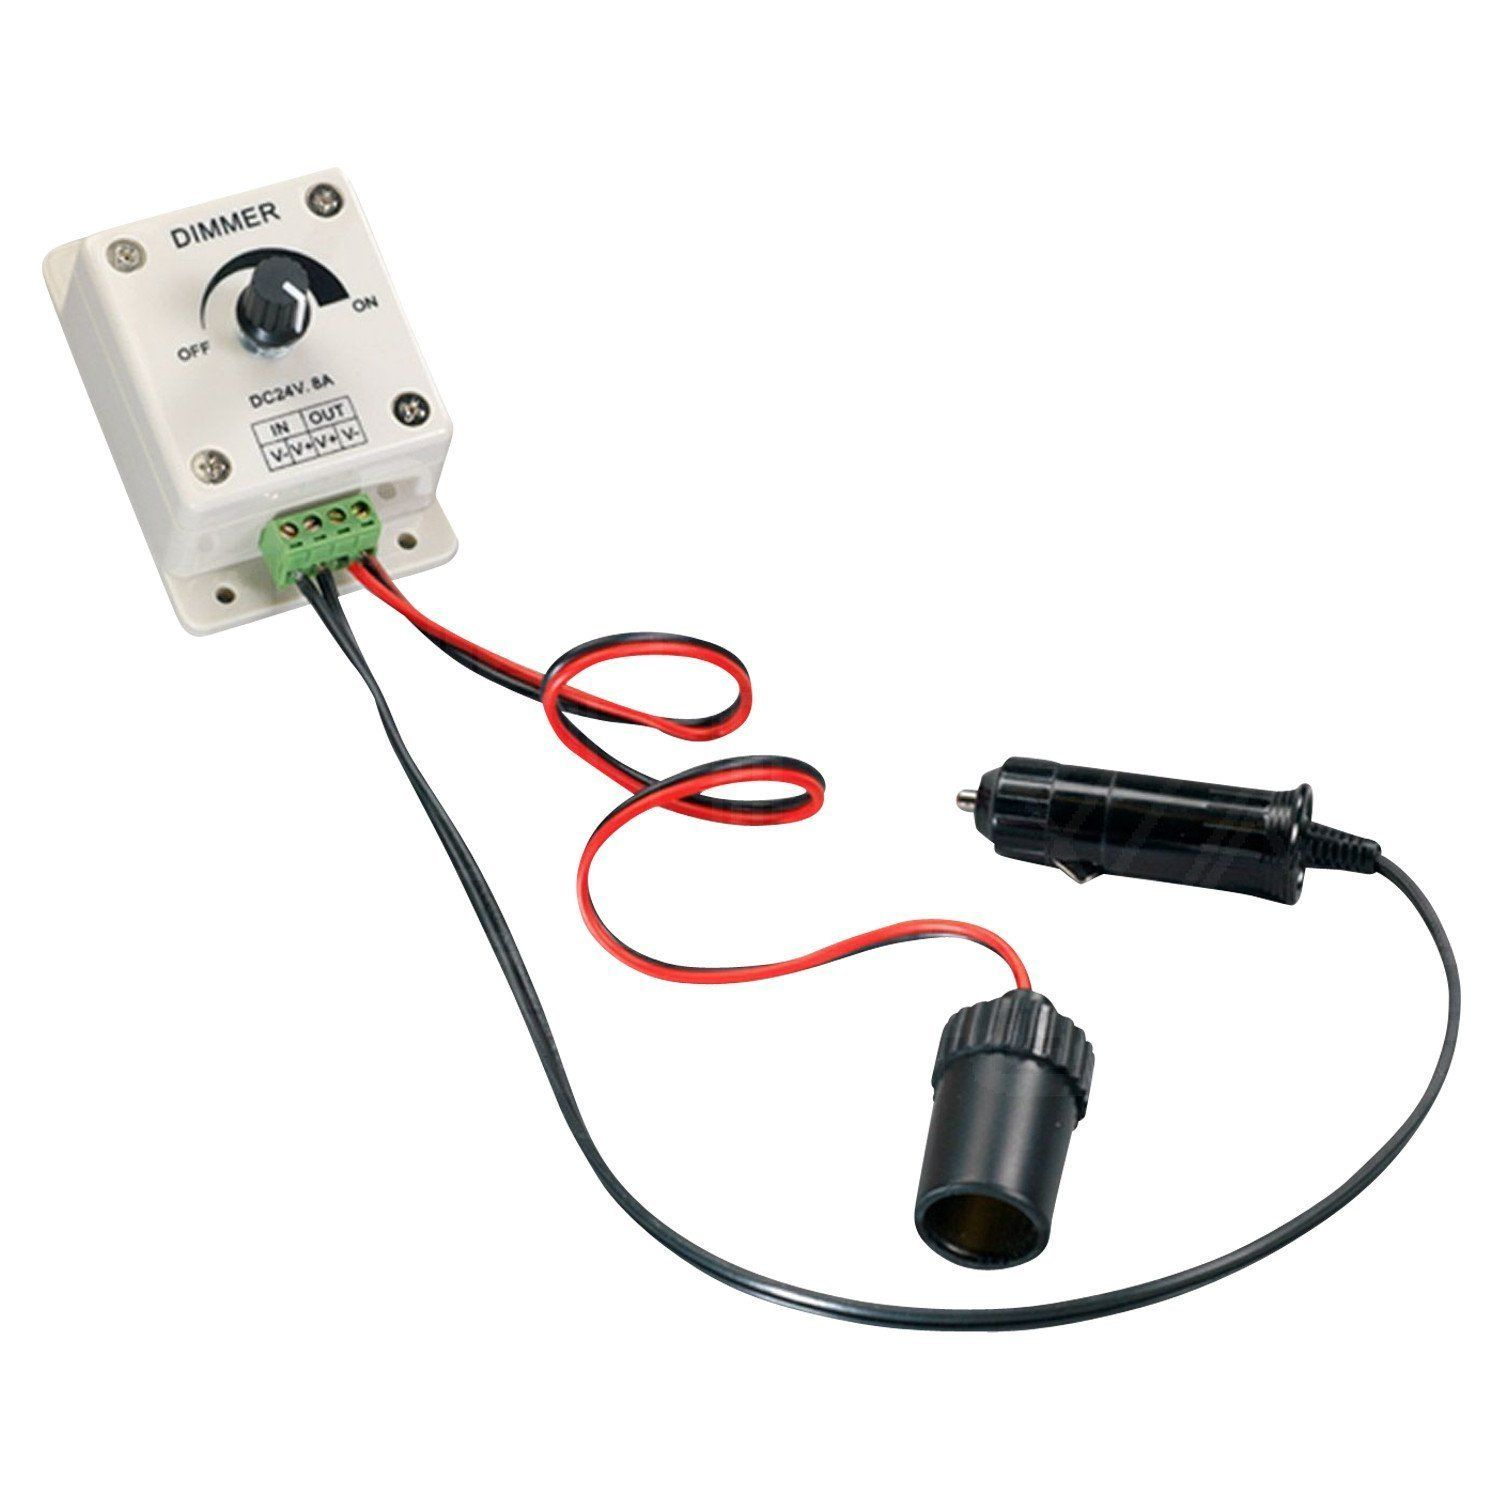 Surprising A1Bdim Dimmer Switch 12V Dc 8 Amp Led Compatible Elimadent Wiring Cloud Tobiqorsaluggs Outletorg